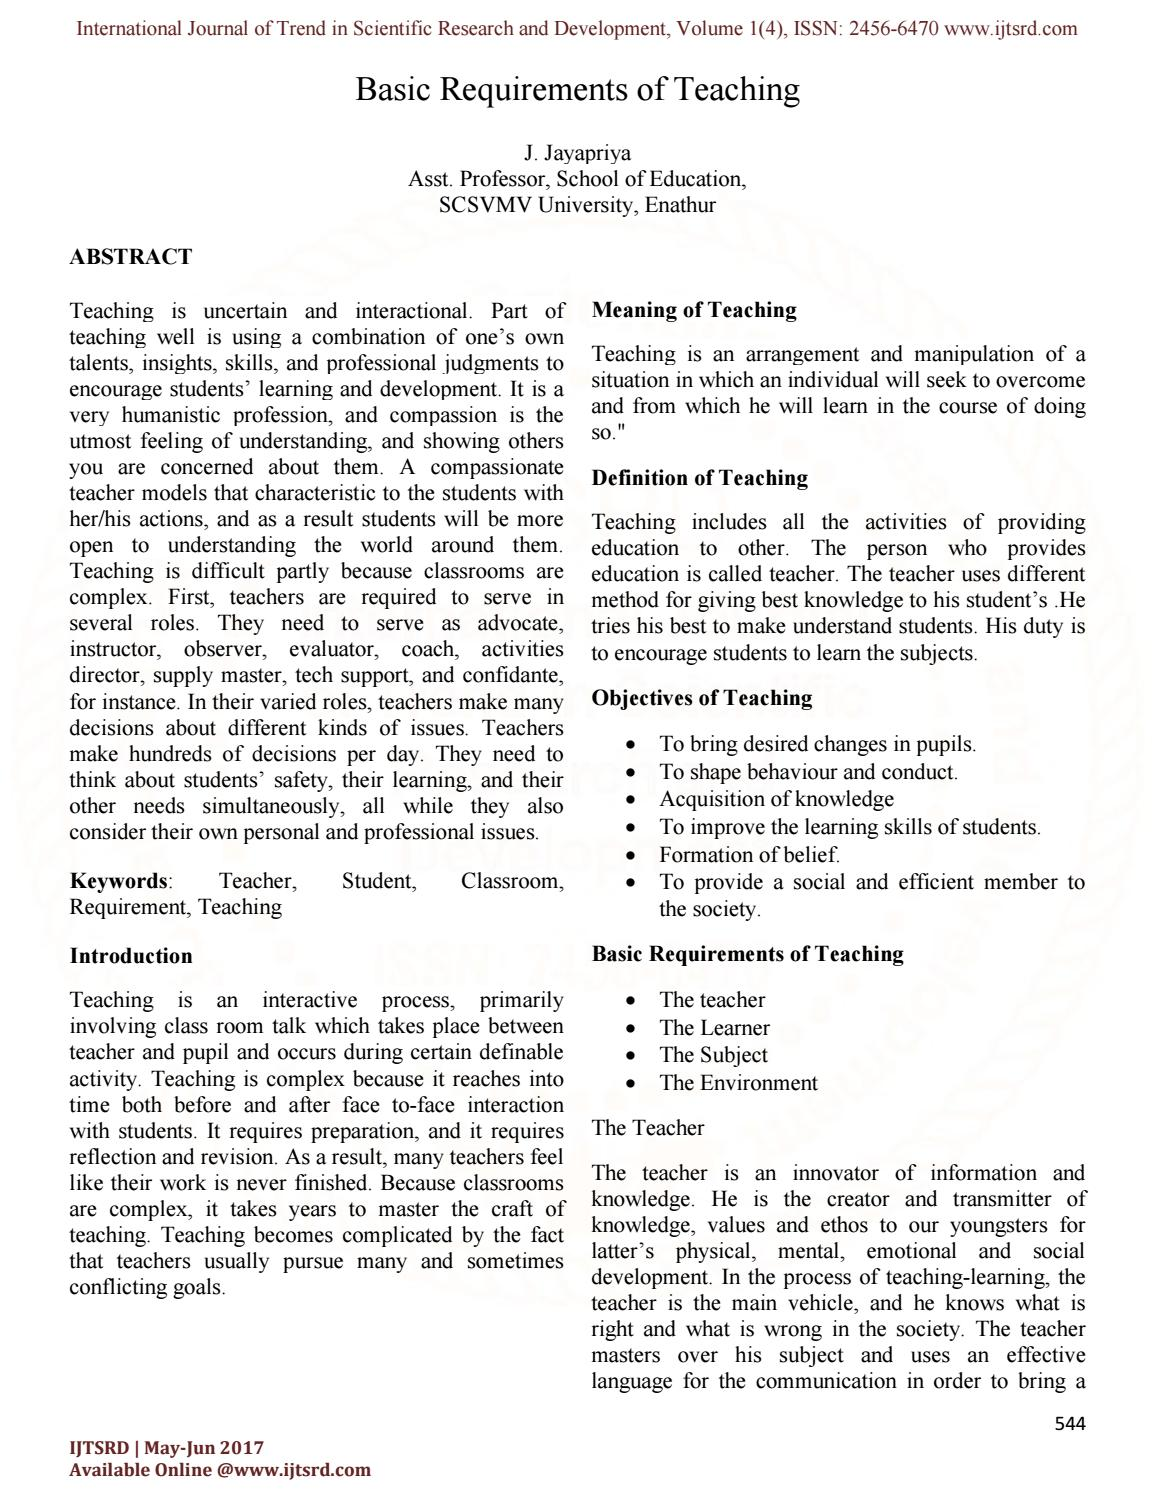 Basic Requirements of Teaching by International Journal of